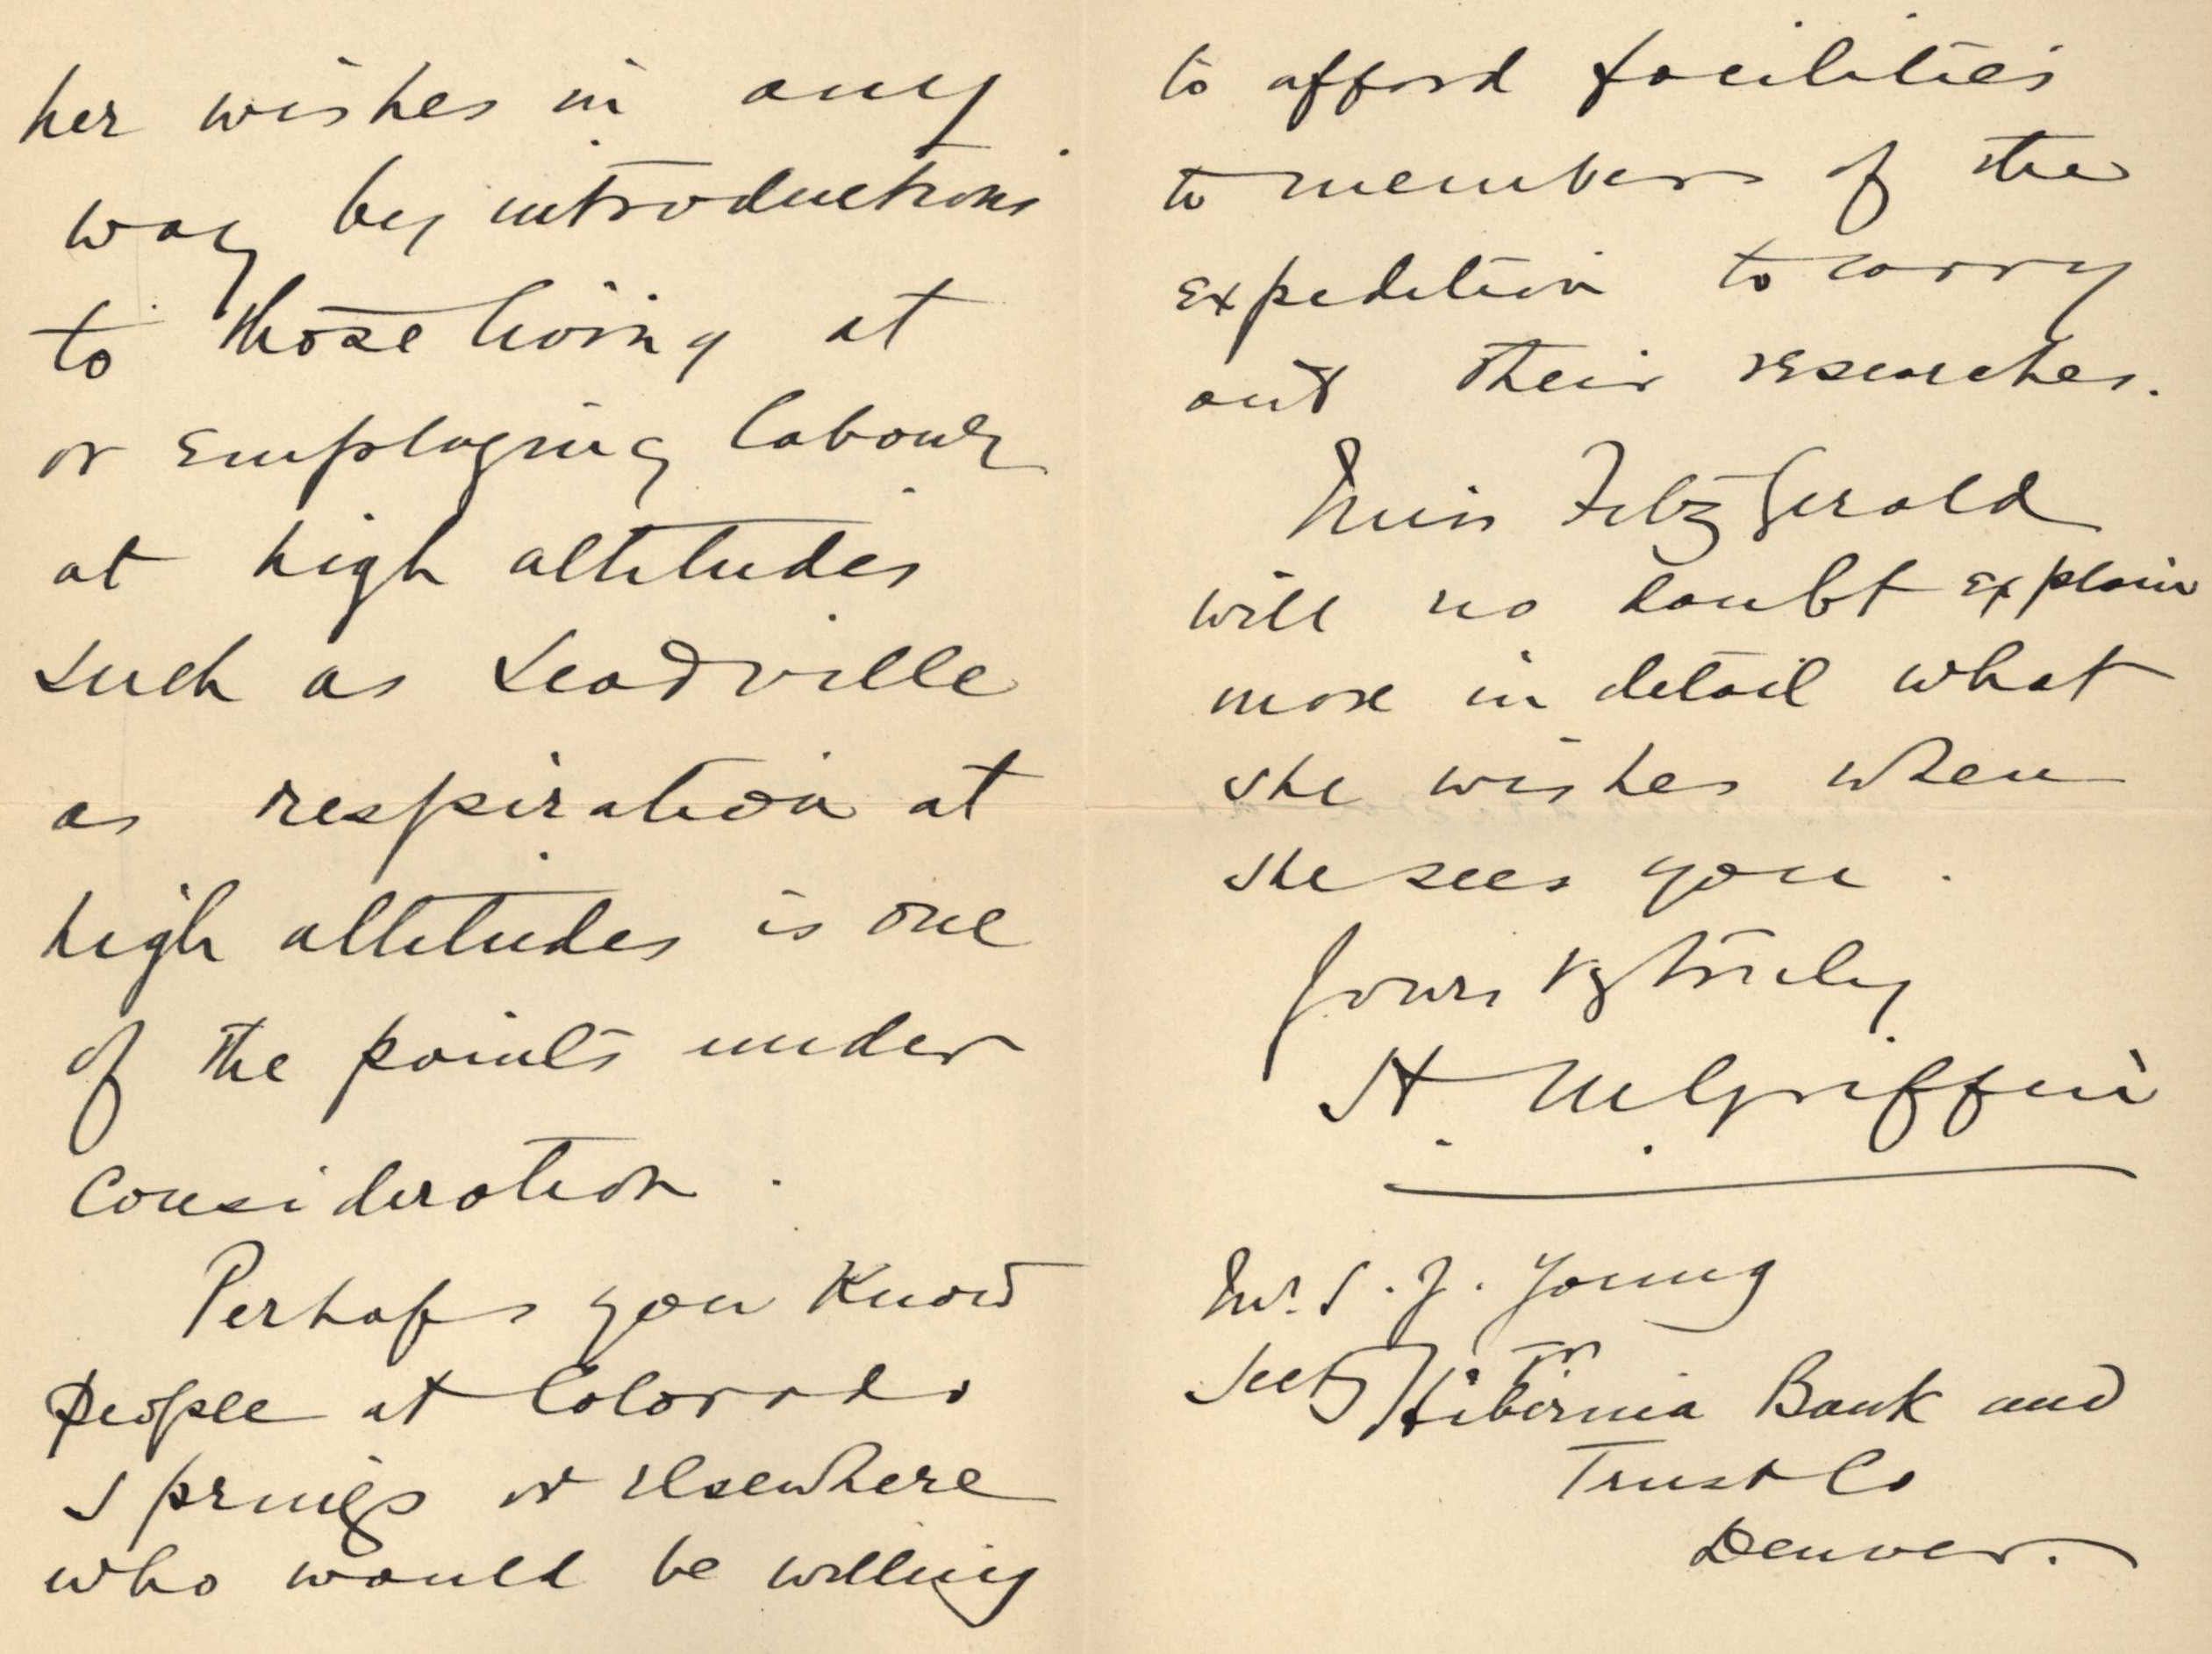 17 Jun 1911 letter [Temp. box FitzGerald 4]